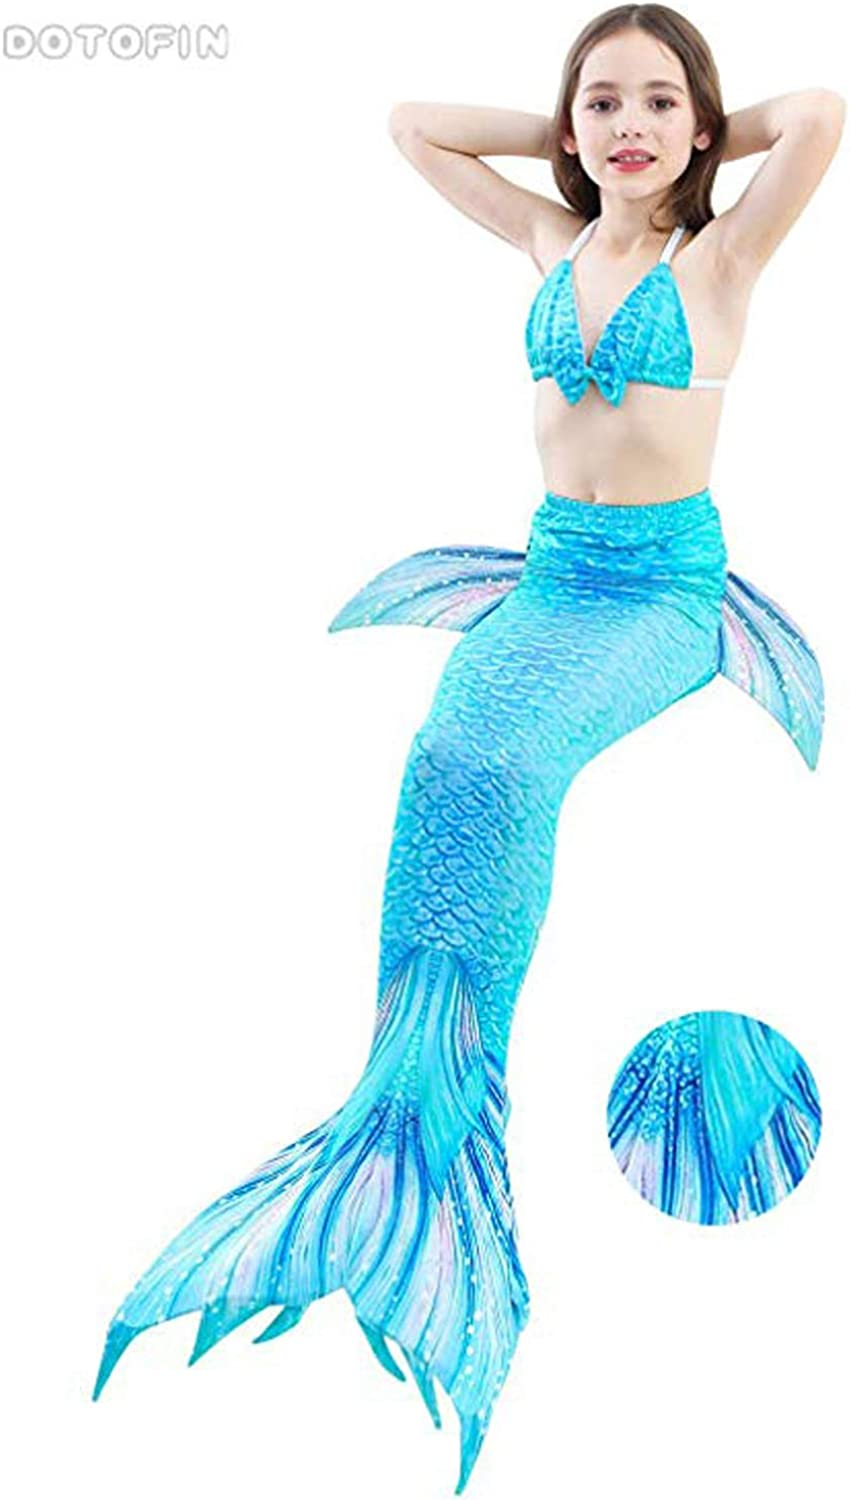 Swimming Costume Swimsuit With Fin DOTOFIN Mermaid Tails Sky Blue Scales Girls Swimmable Mermaid Tail Swimsuit Swimwear With Monofin Child 8